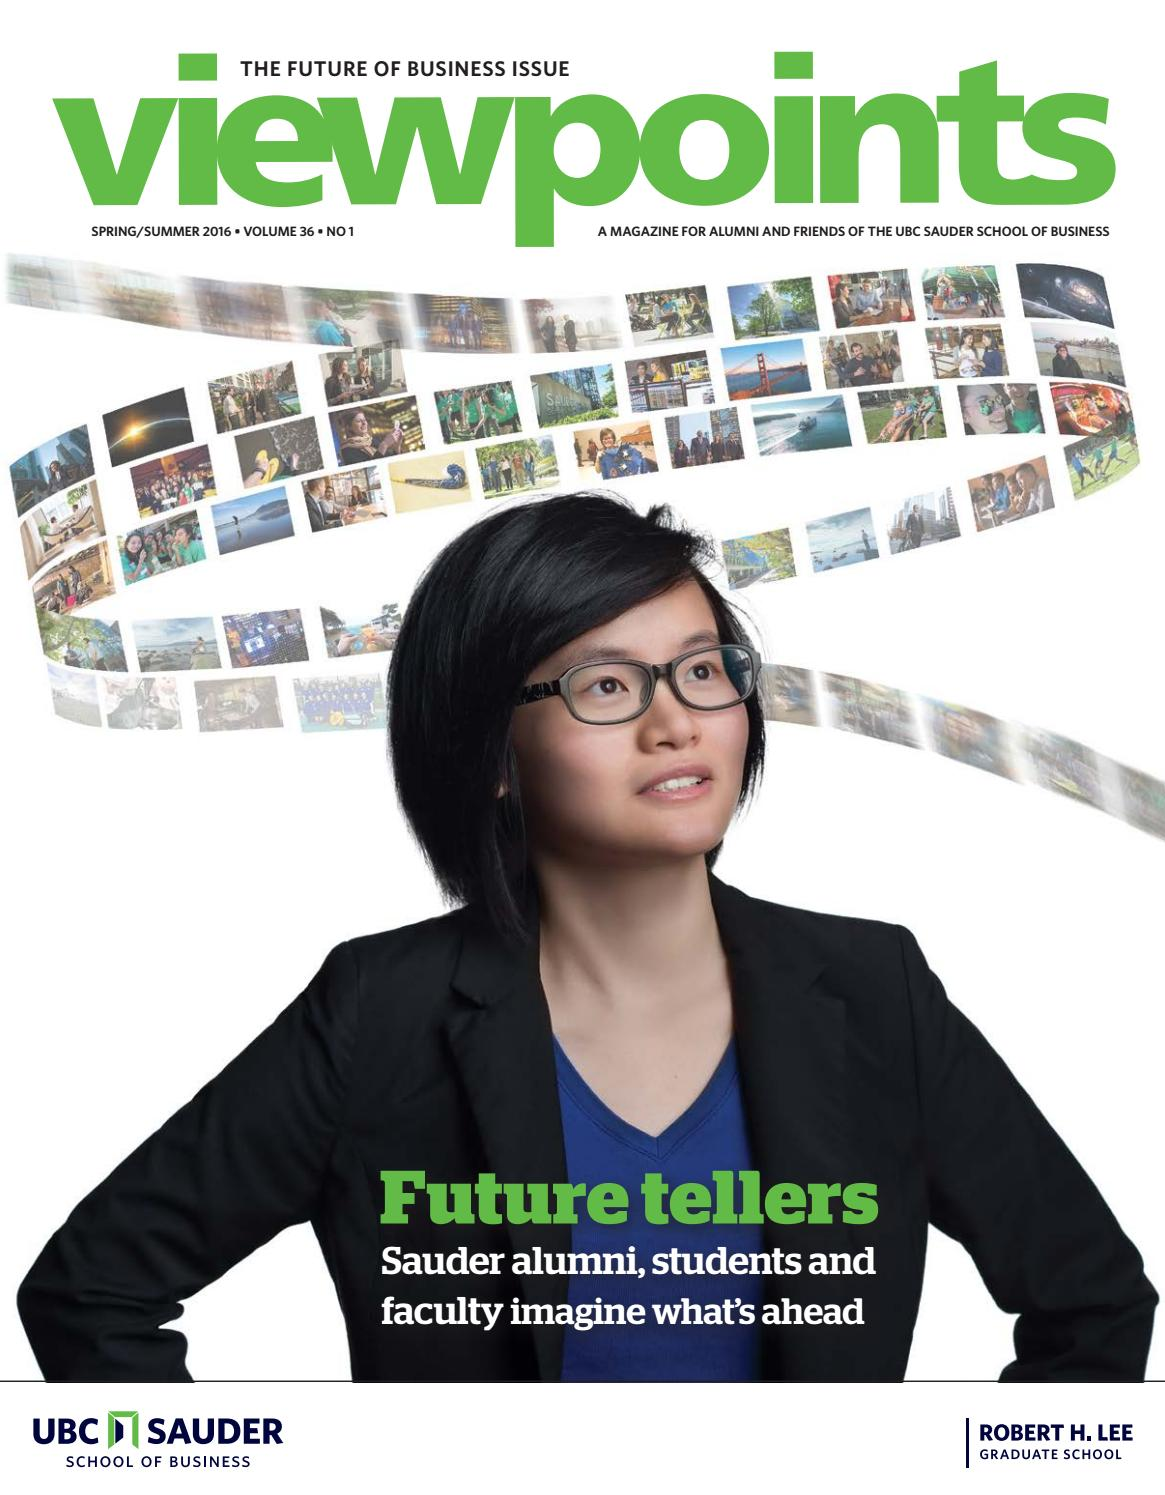 viewpoints fall sauder school of business by sauder school viewpoints fall 2014 sauder school of business by sauder school of business issuu